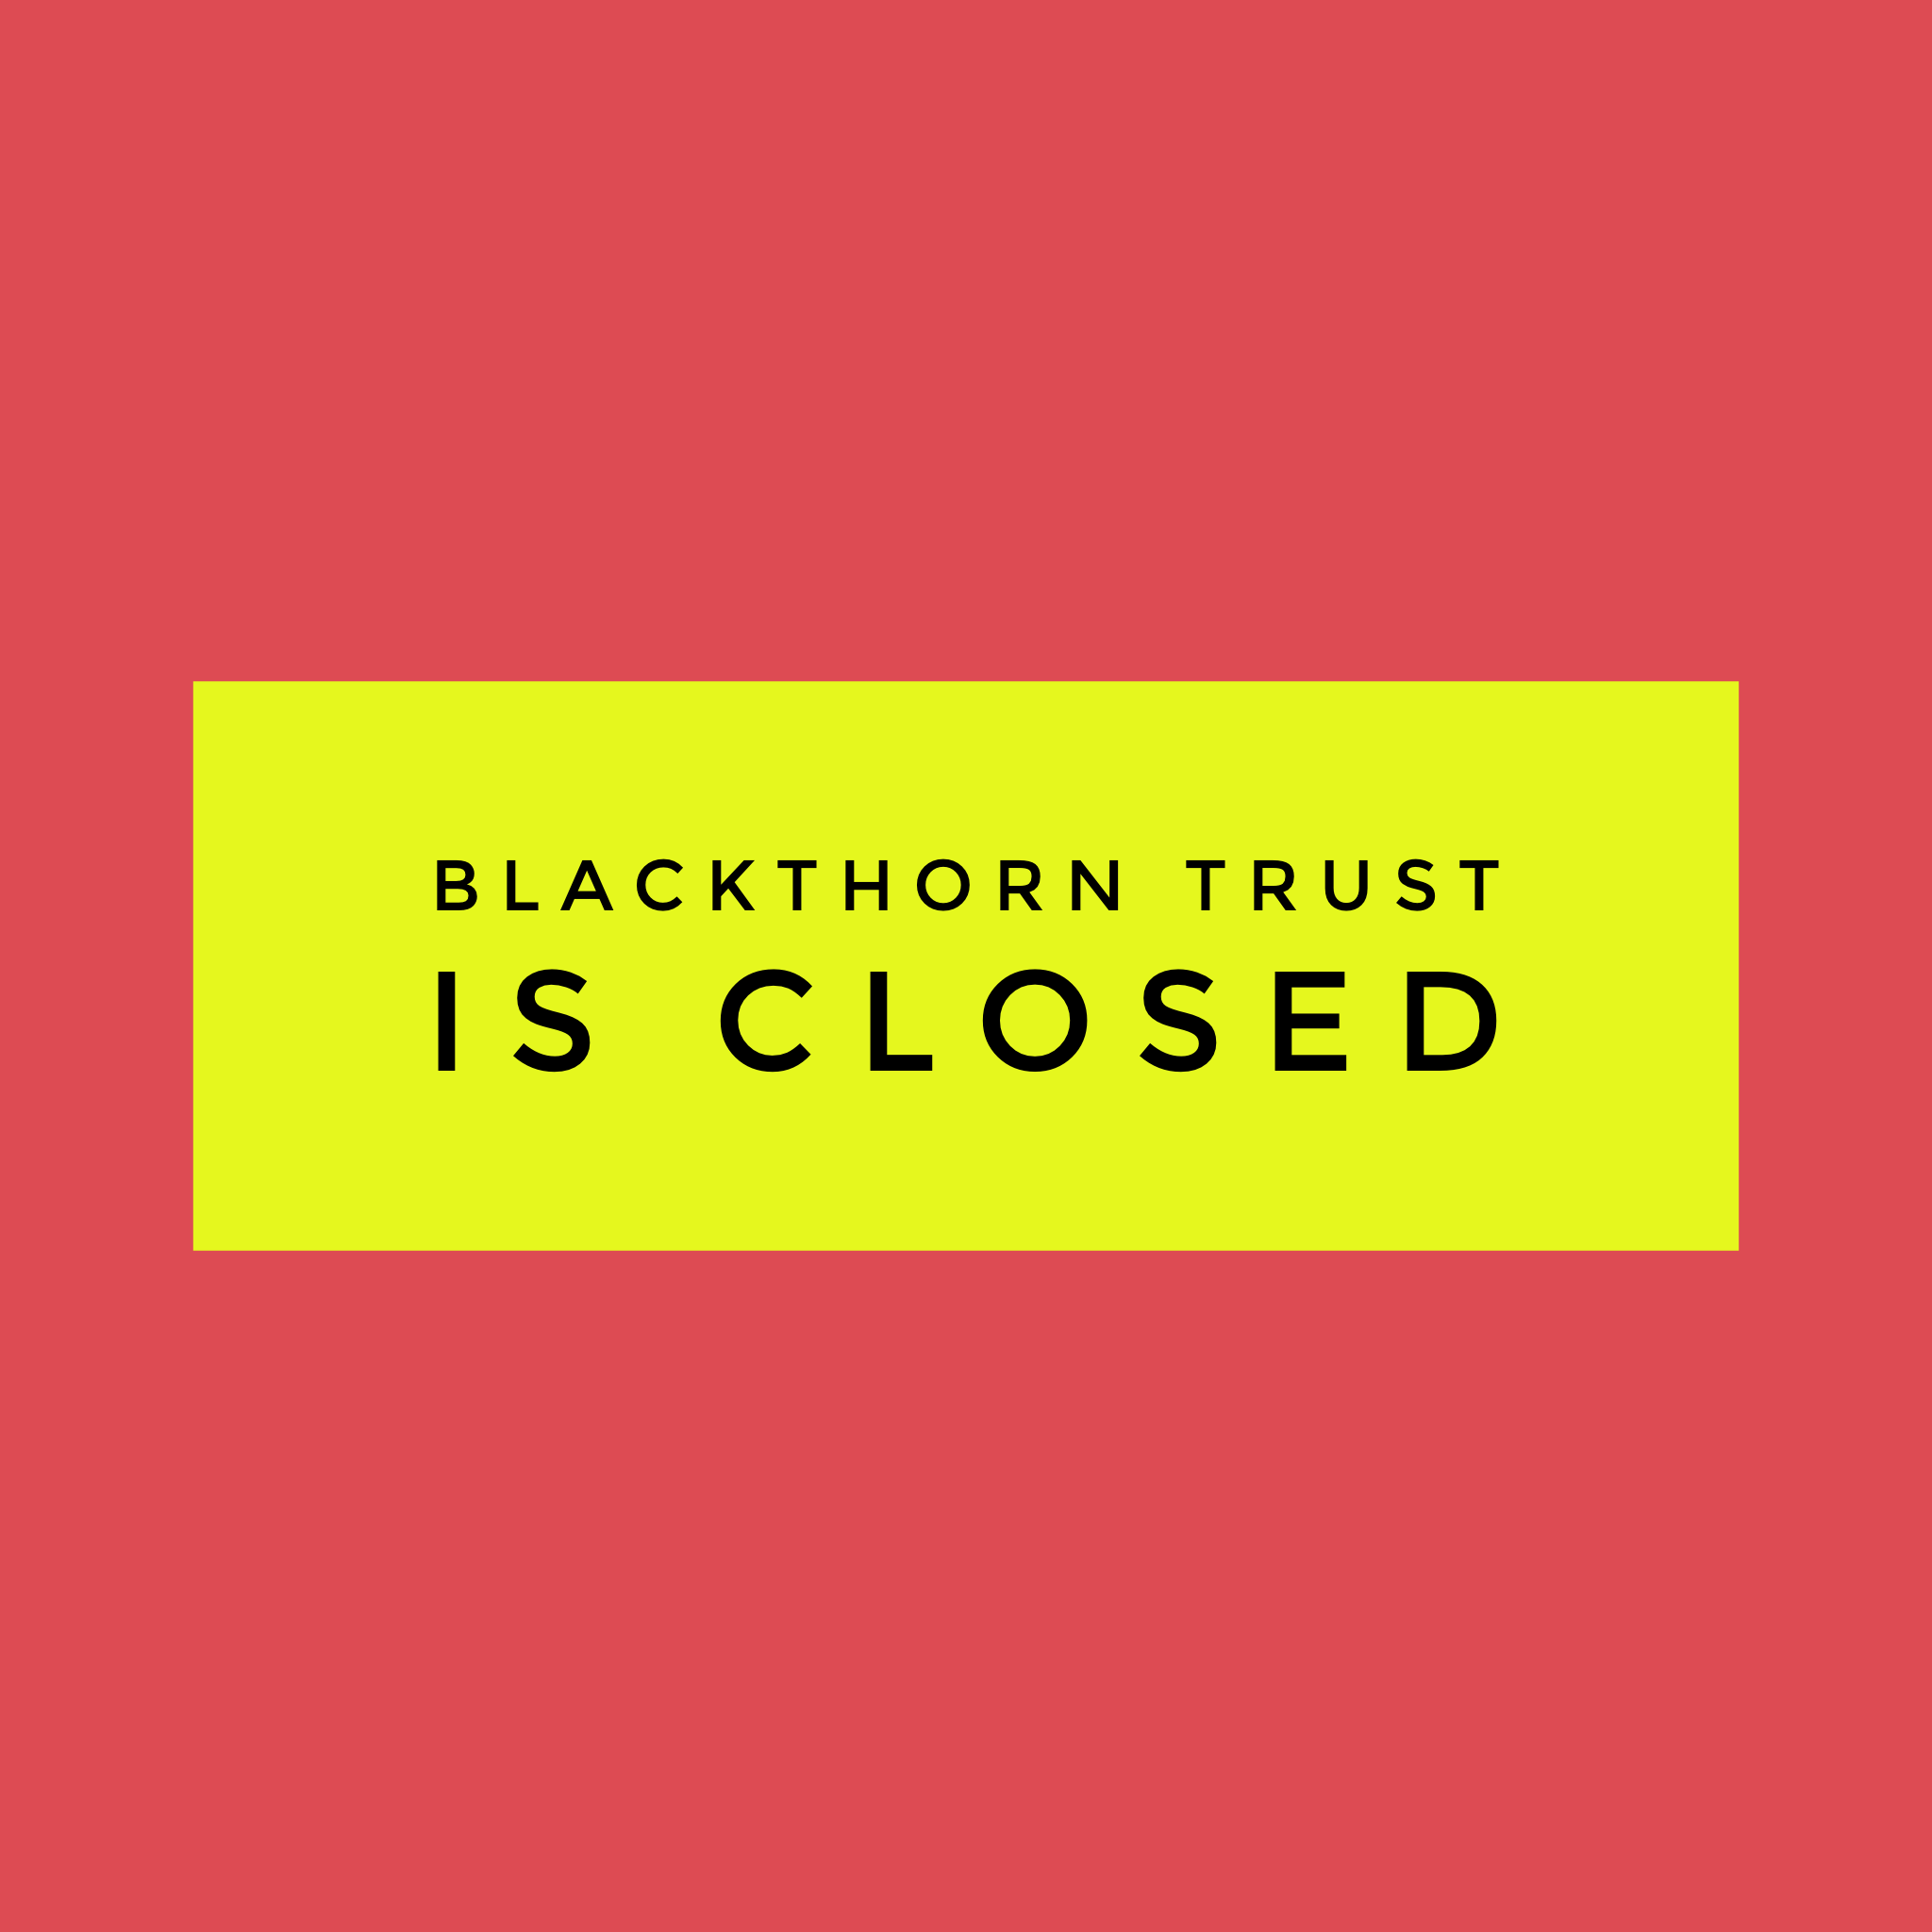 Blackthorn Closed